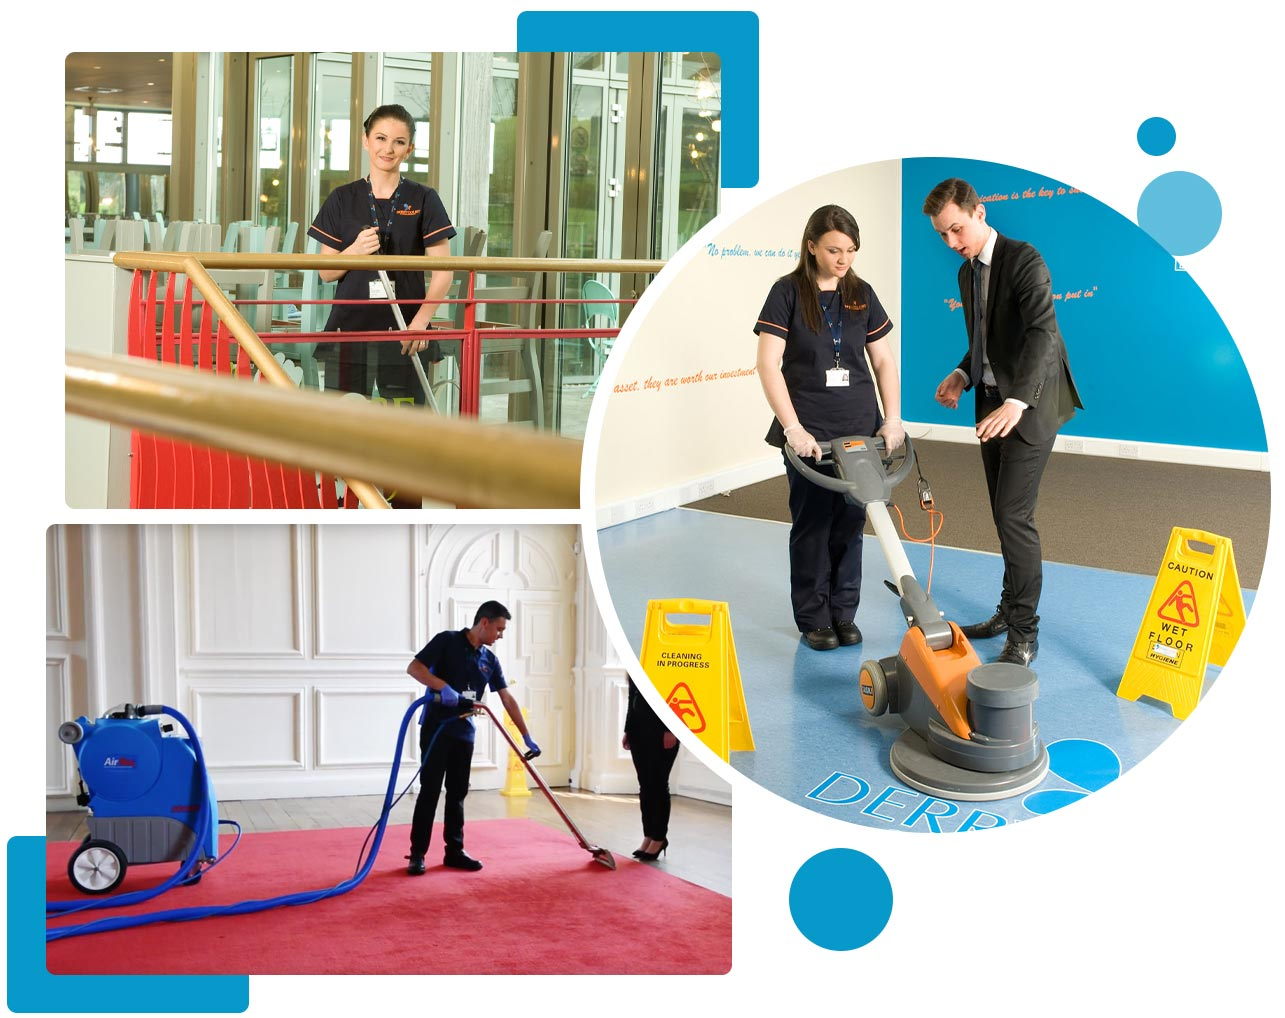 Derrycourt Team Cleaning the Carpet and Floor.